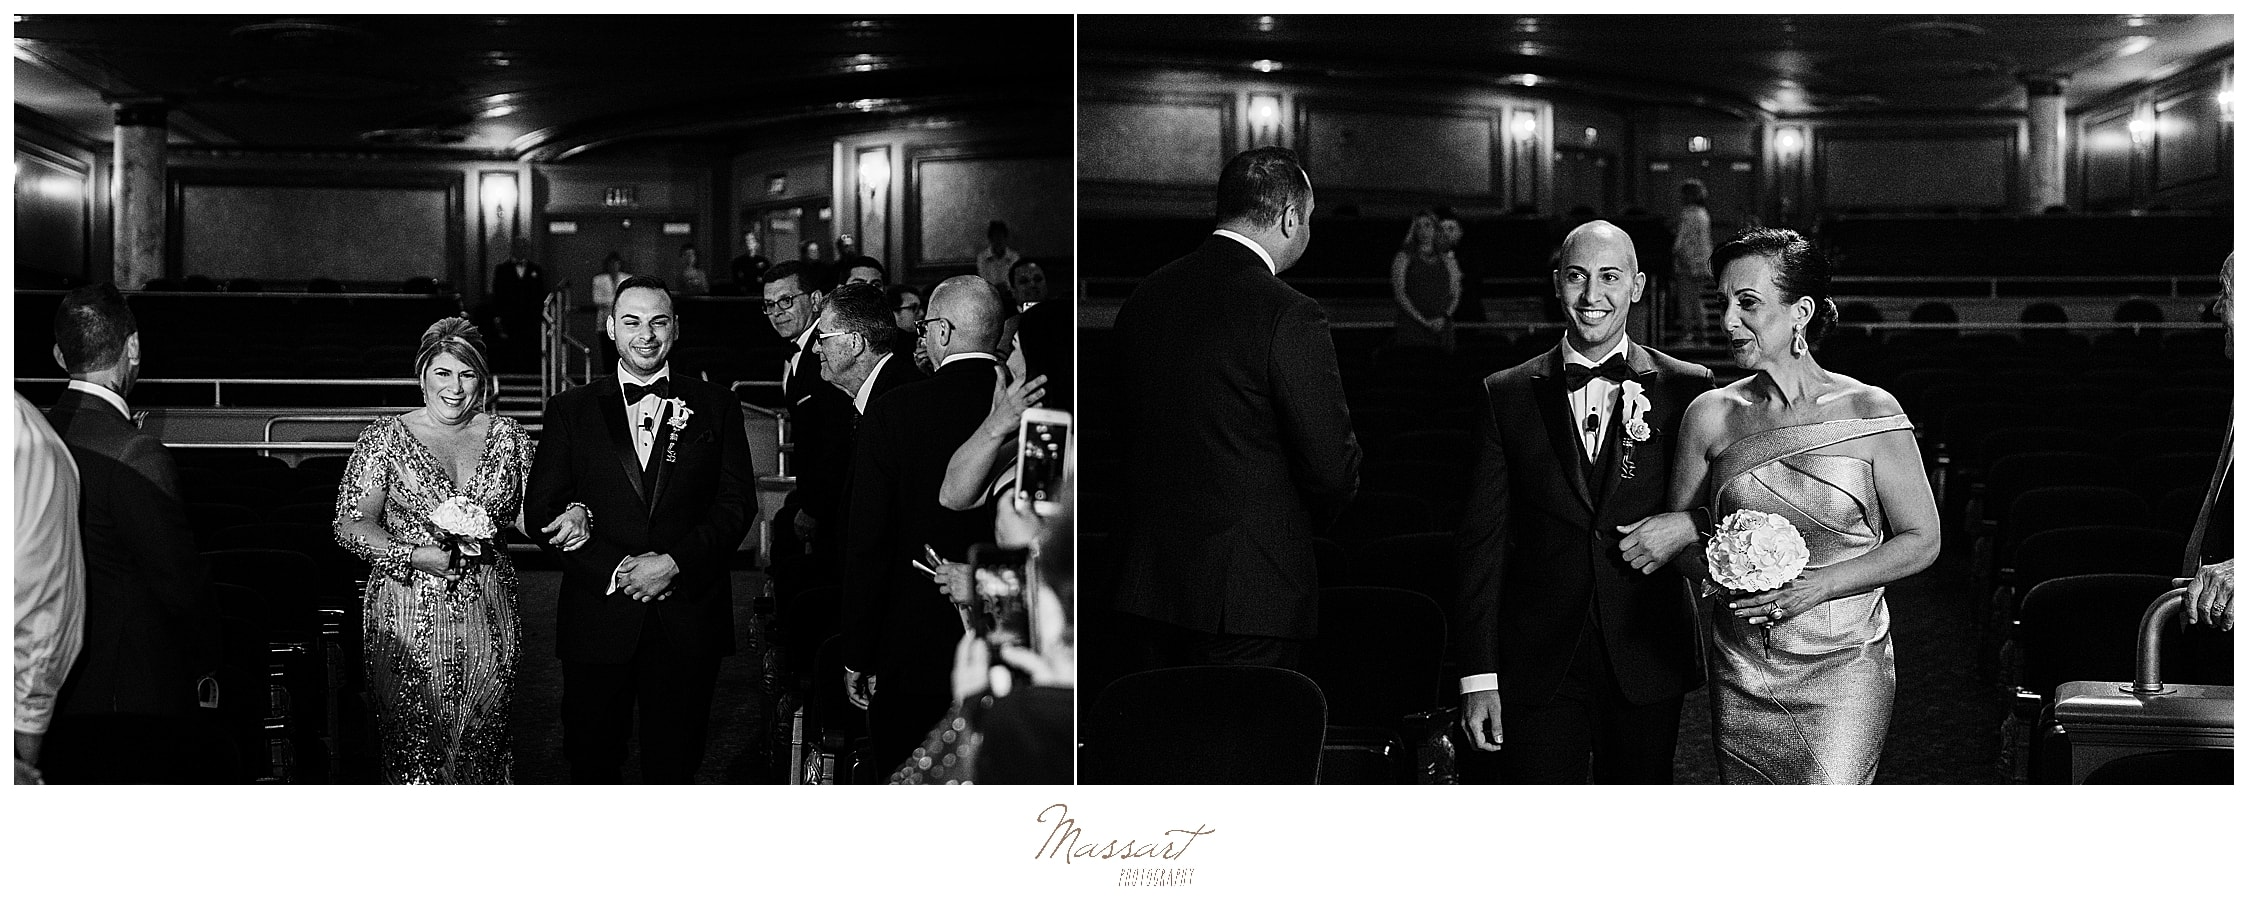 Palace Theater wedding ceremony photographed by CT wedding photographers Massart Photography